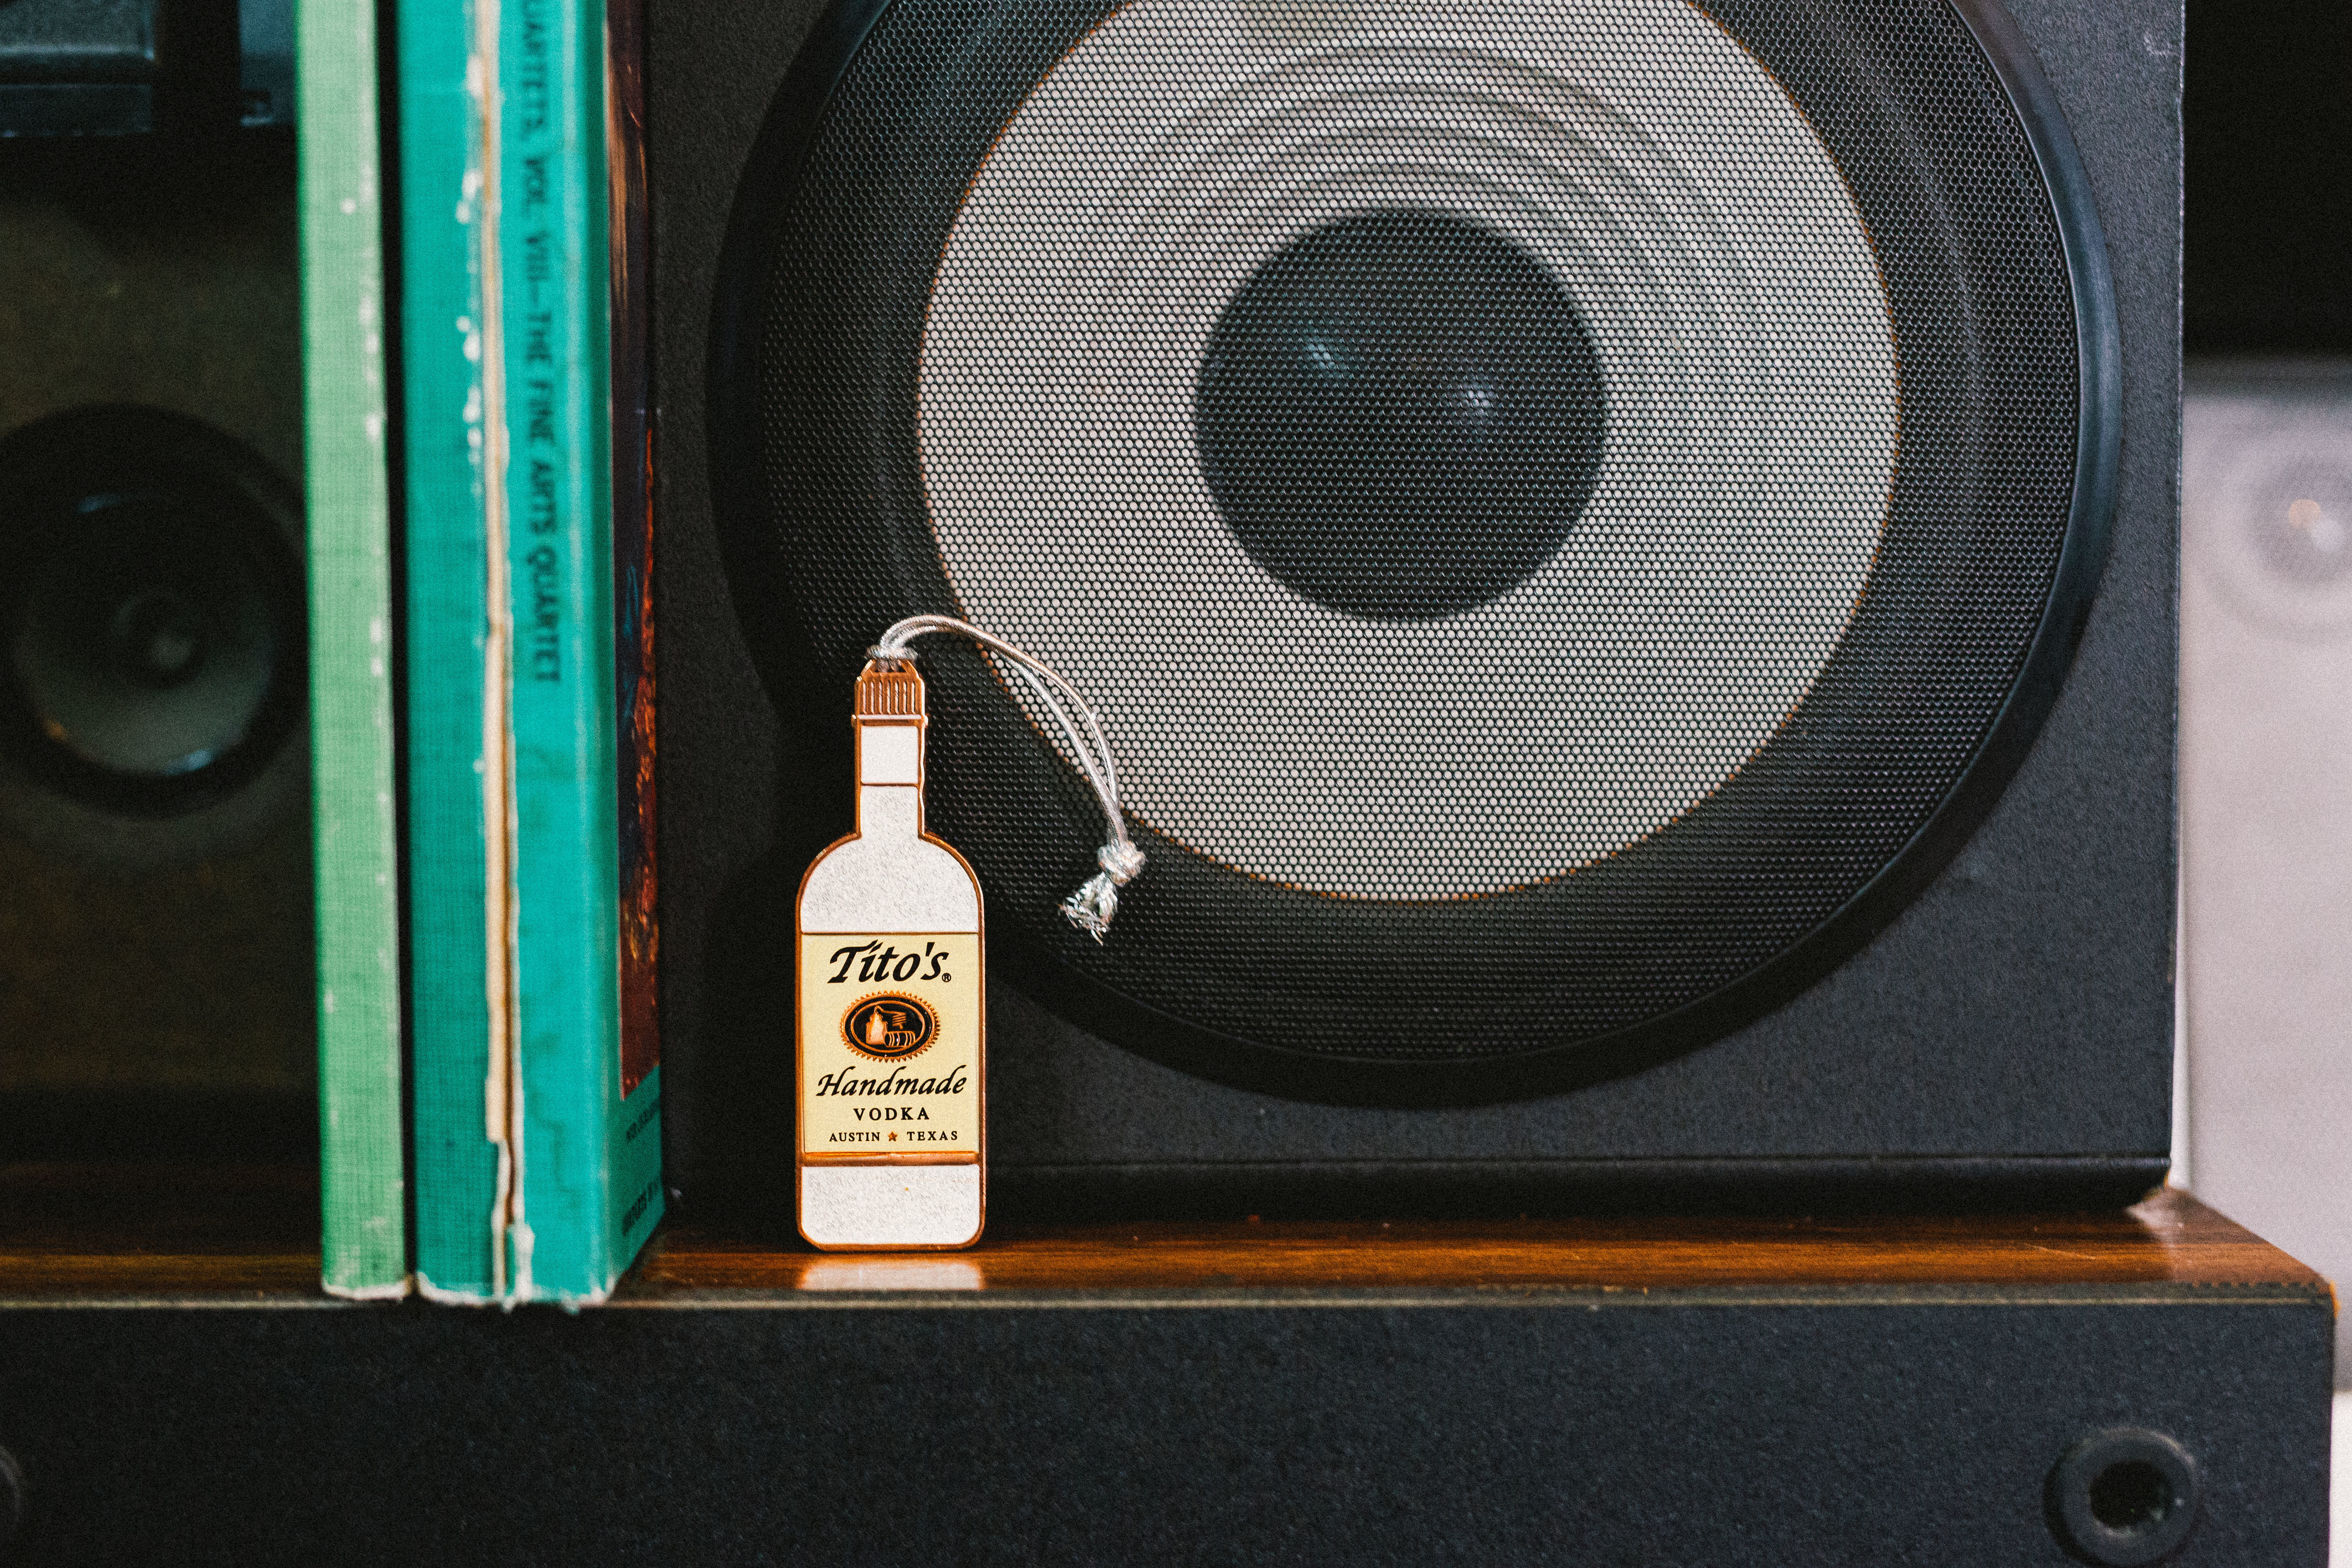 Tito's Stardust Sparkle Bottle Ornament on a bookshelf in front of a speaker